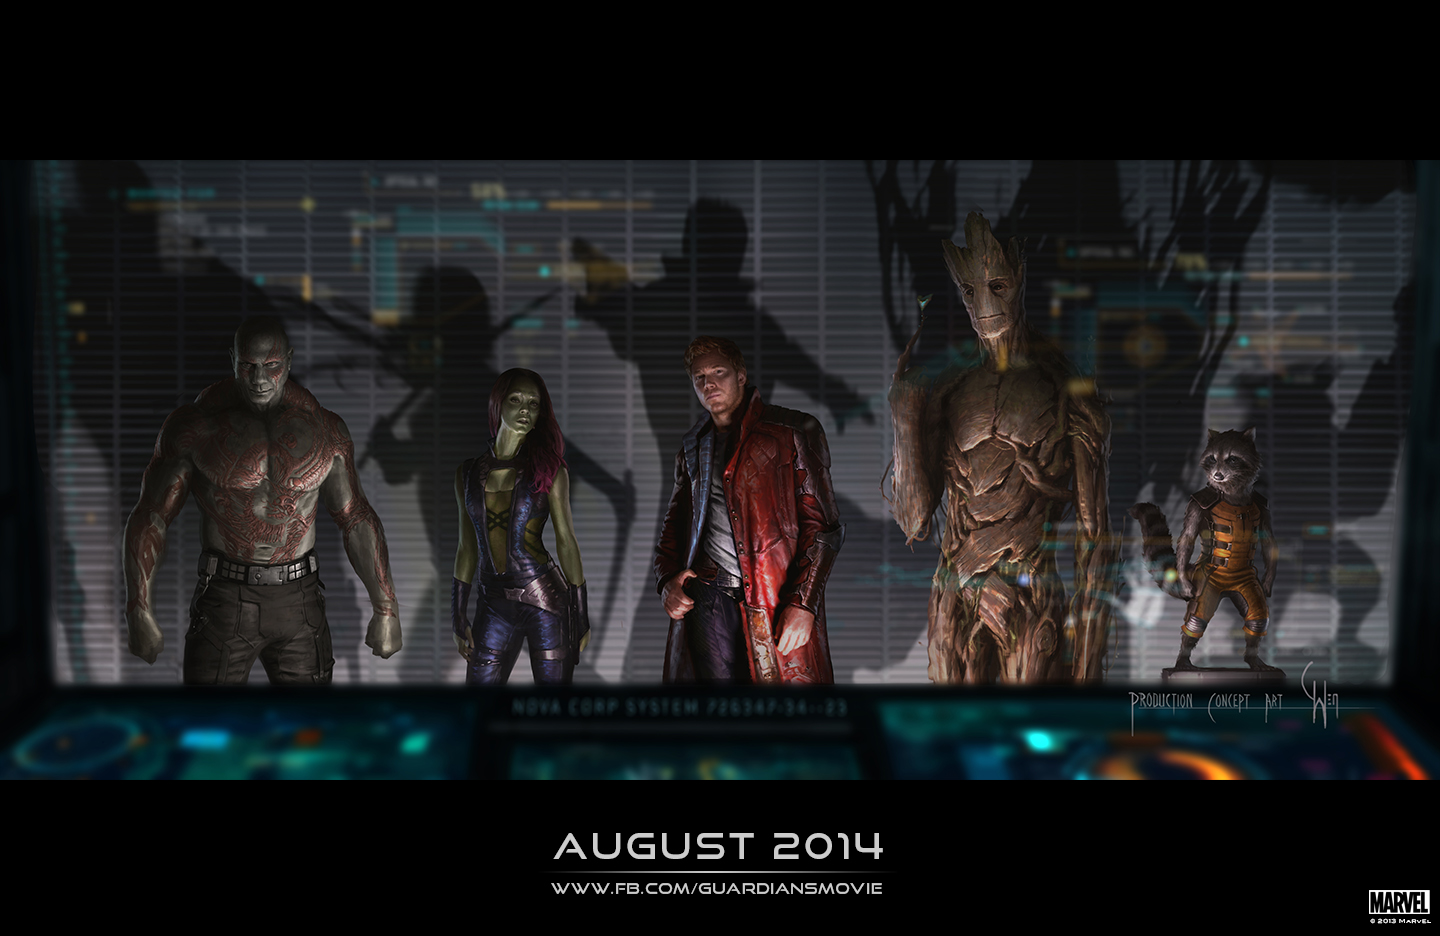 GUARDIANS OF THE GALAXY-Official Poster Banner PROMO FIRST LOOK-02JANEIRO2014-01